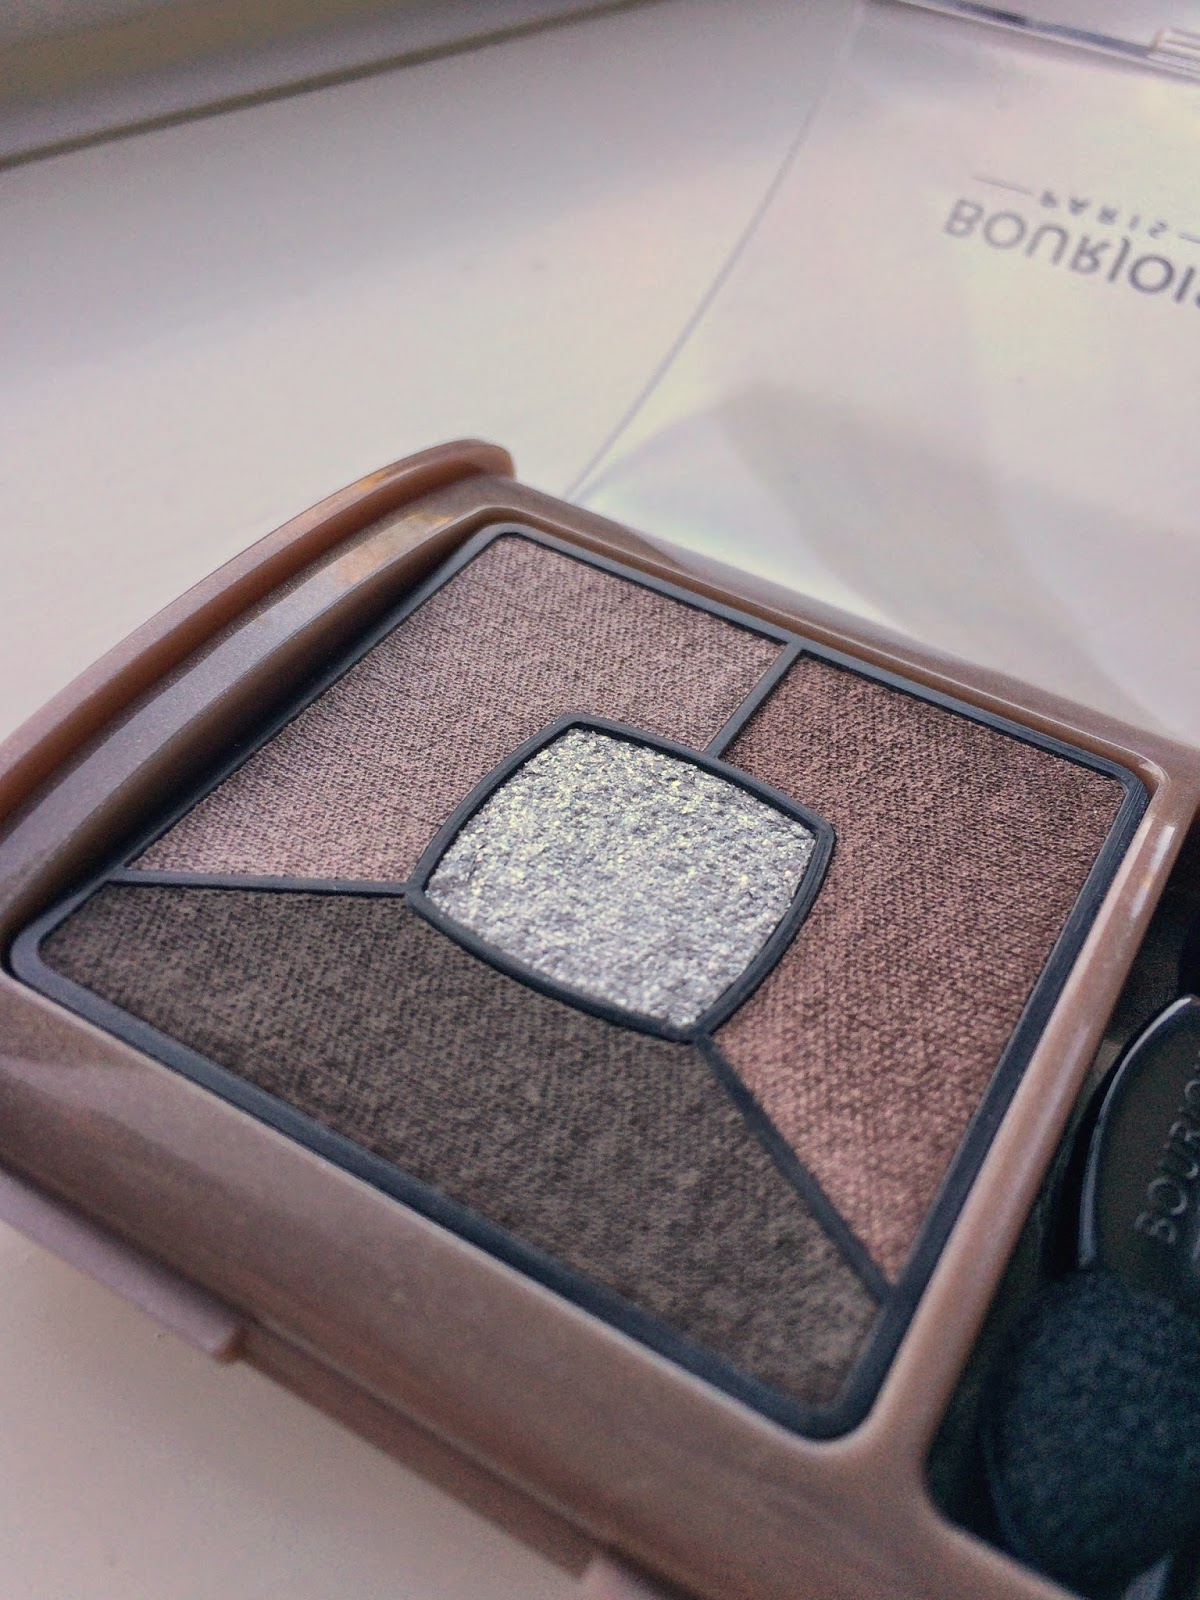 Bourjois-Quad-Smoky-Stories-eyeshadow-good-nude-review